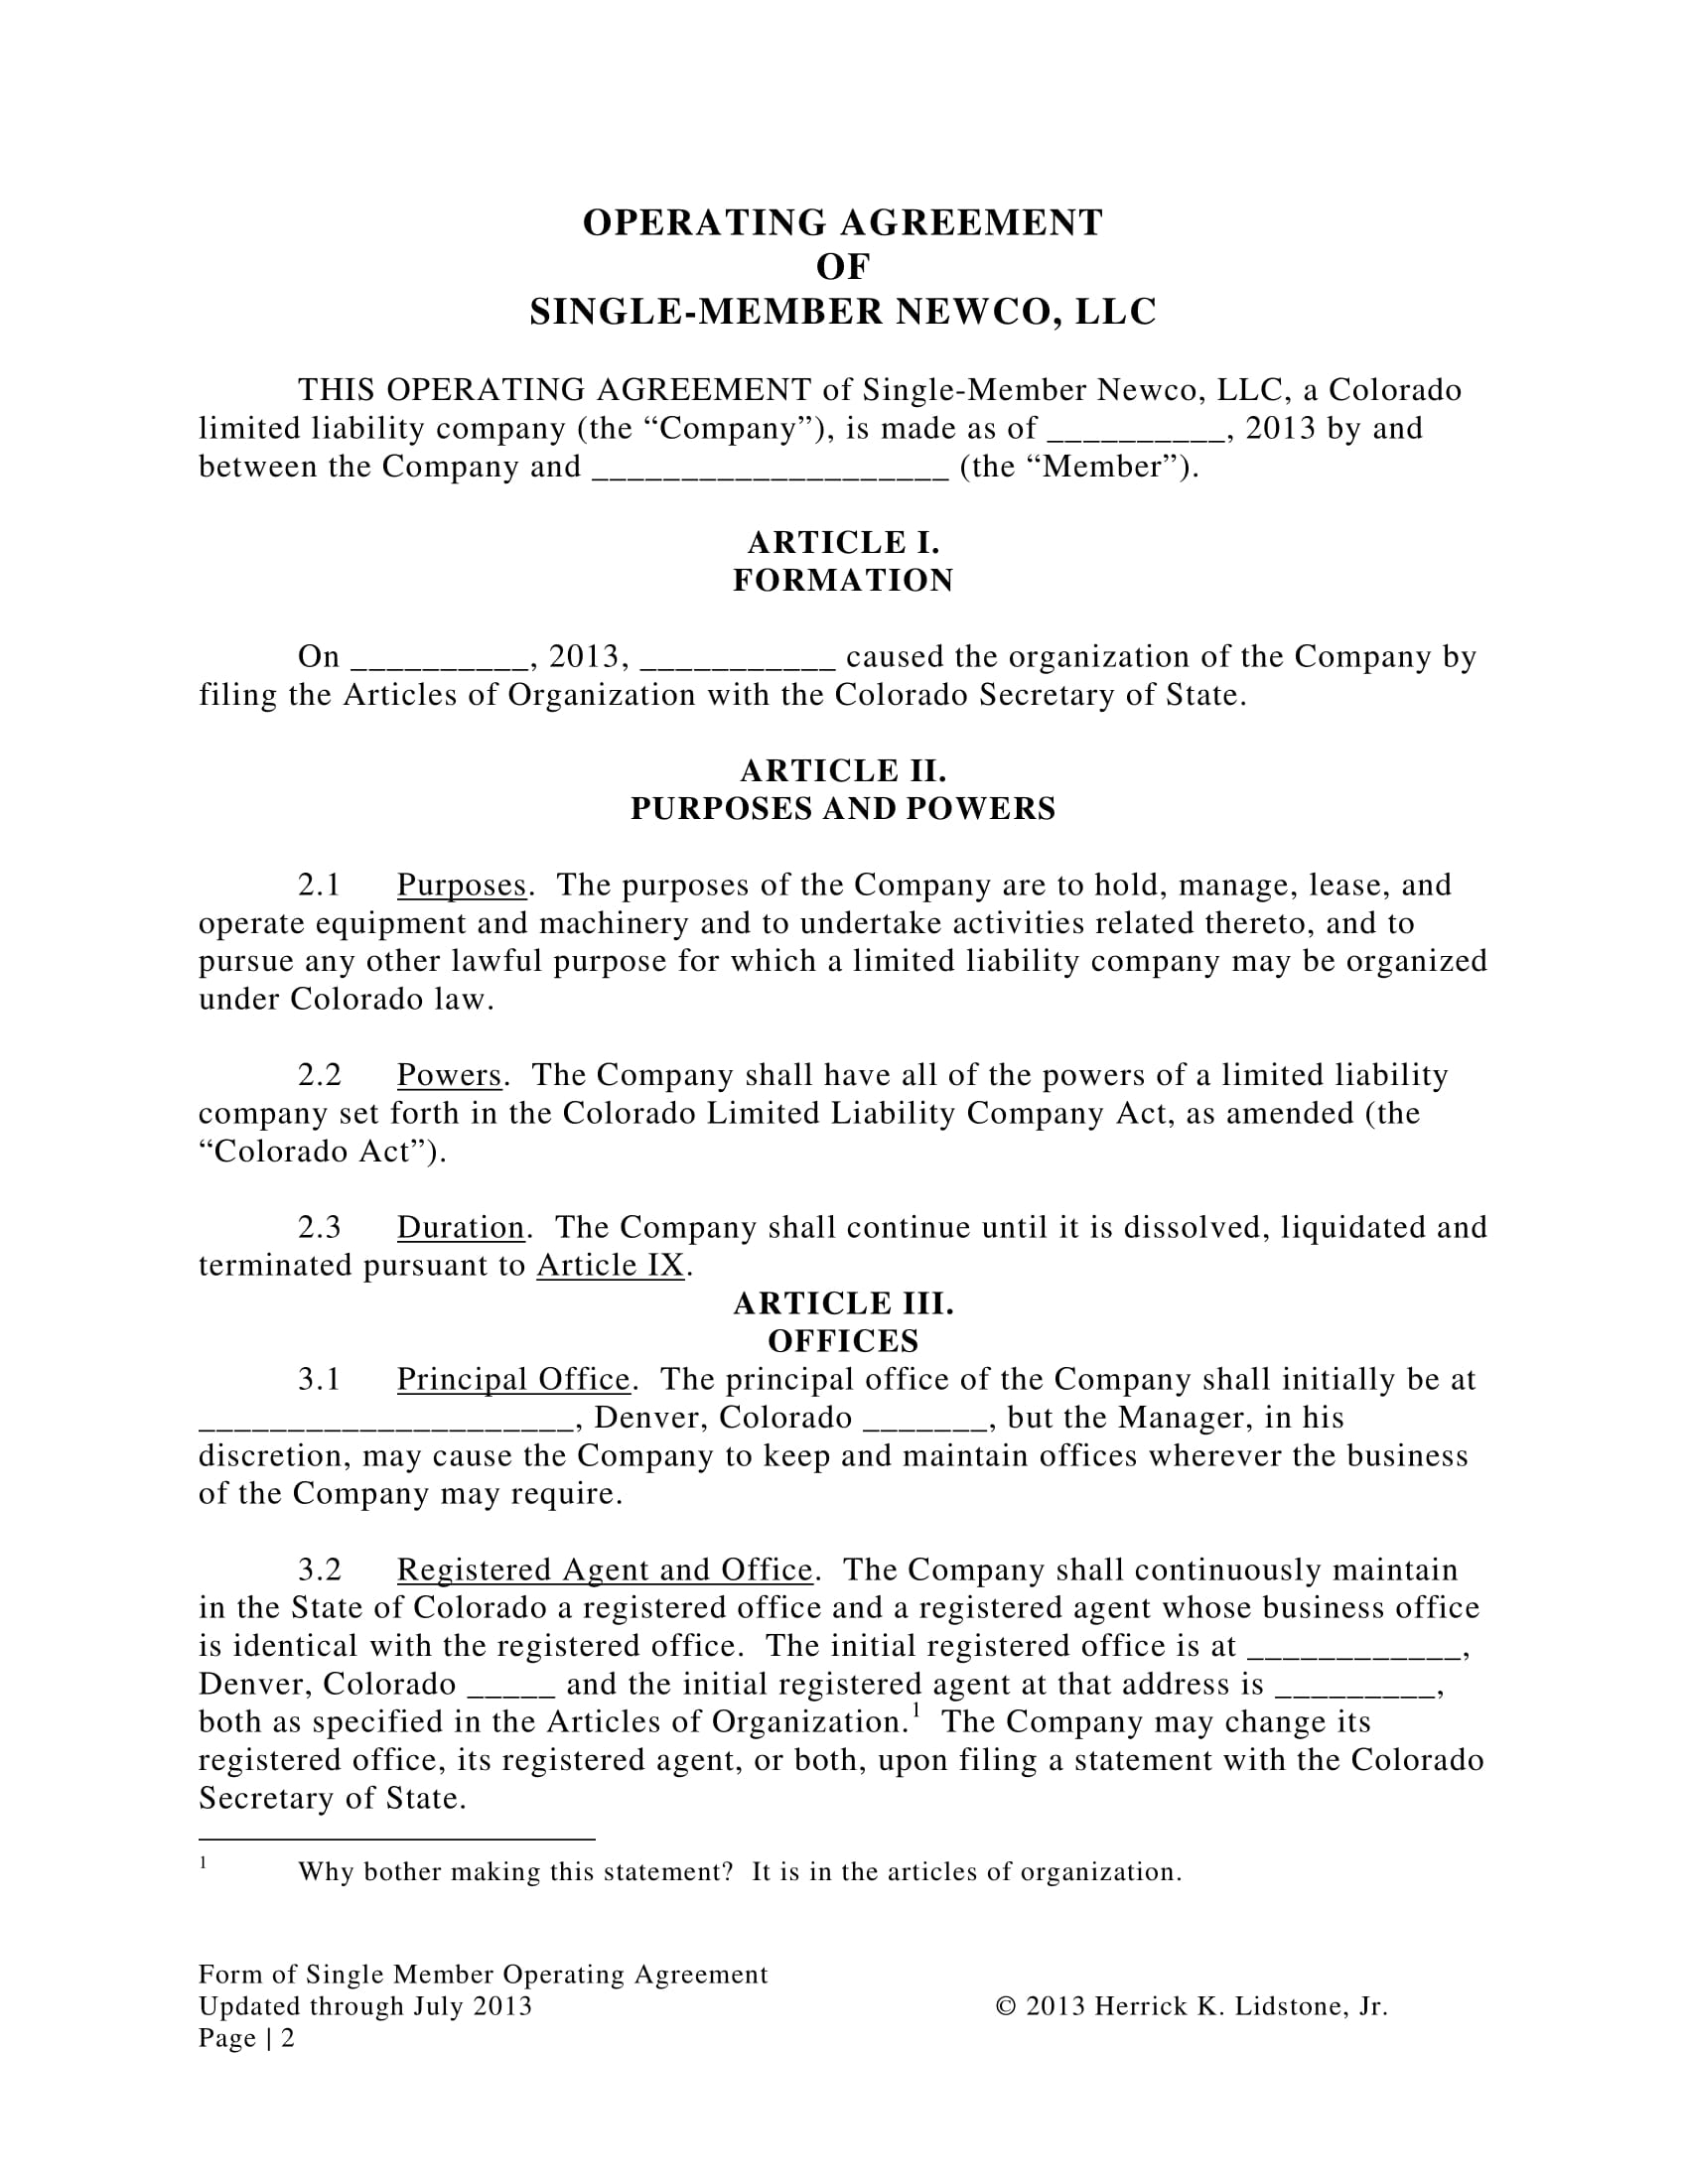 single member operating agreement contract form 02